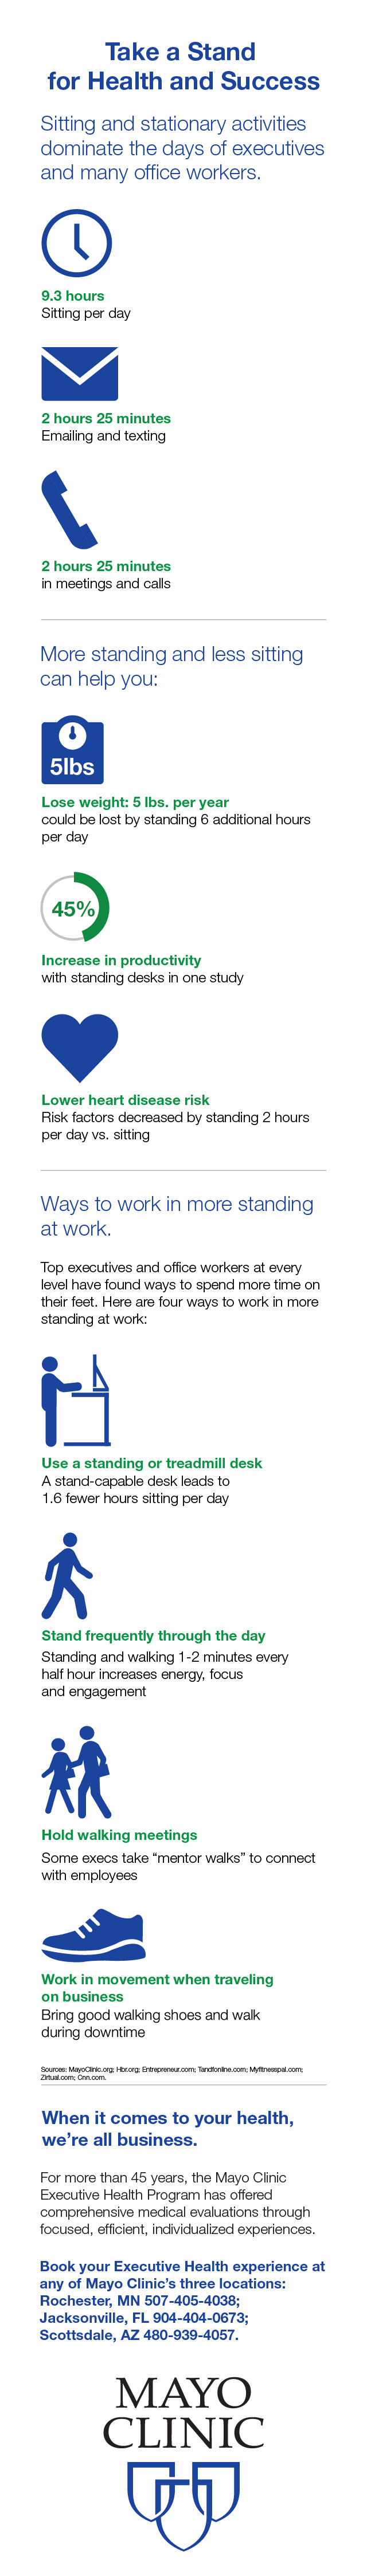 Infographic of standing and sitting